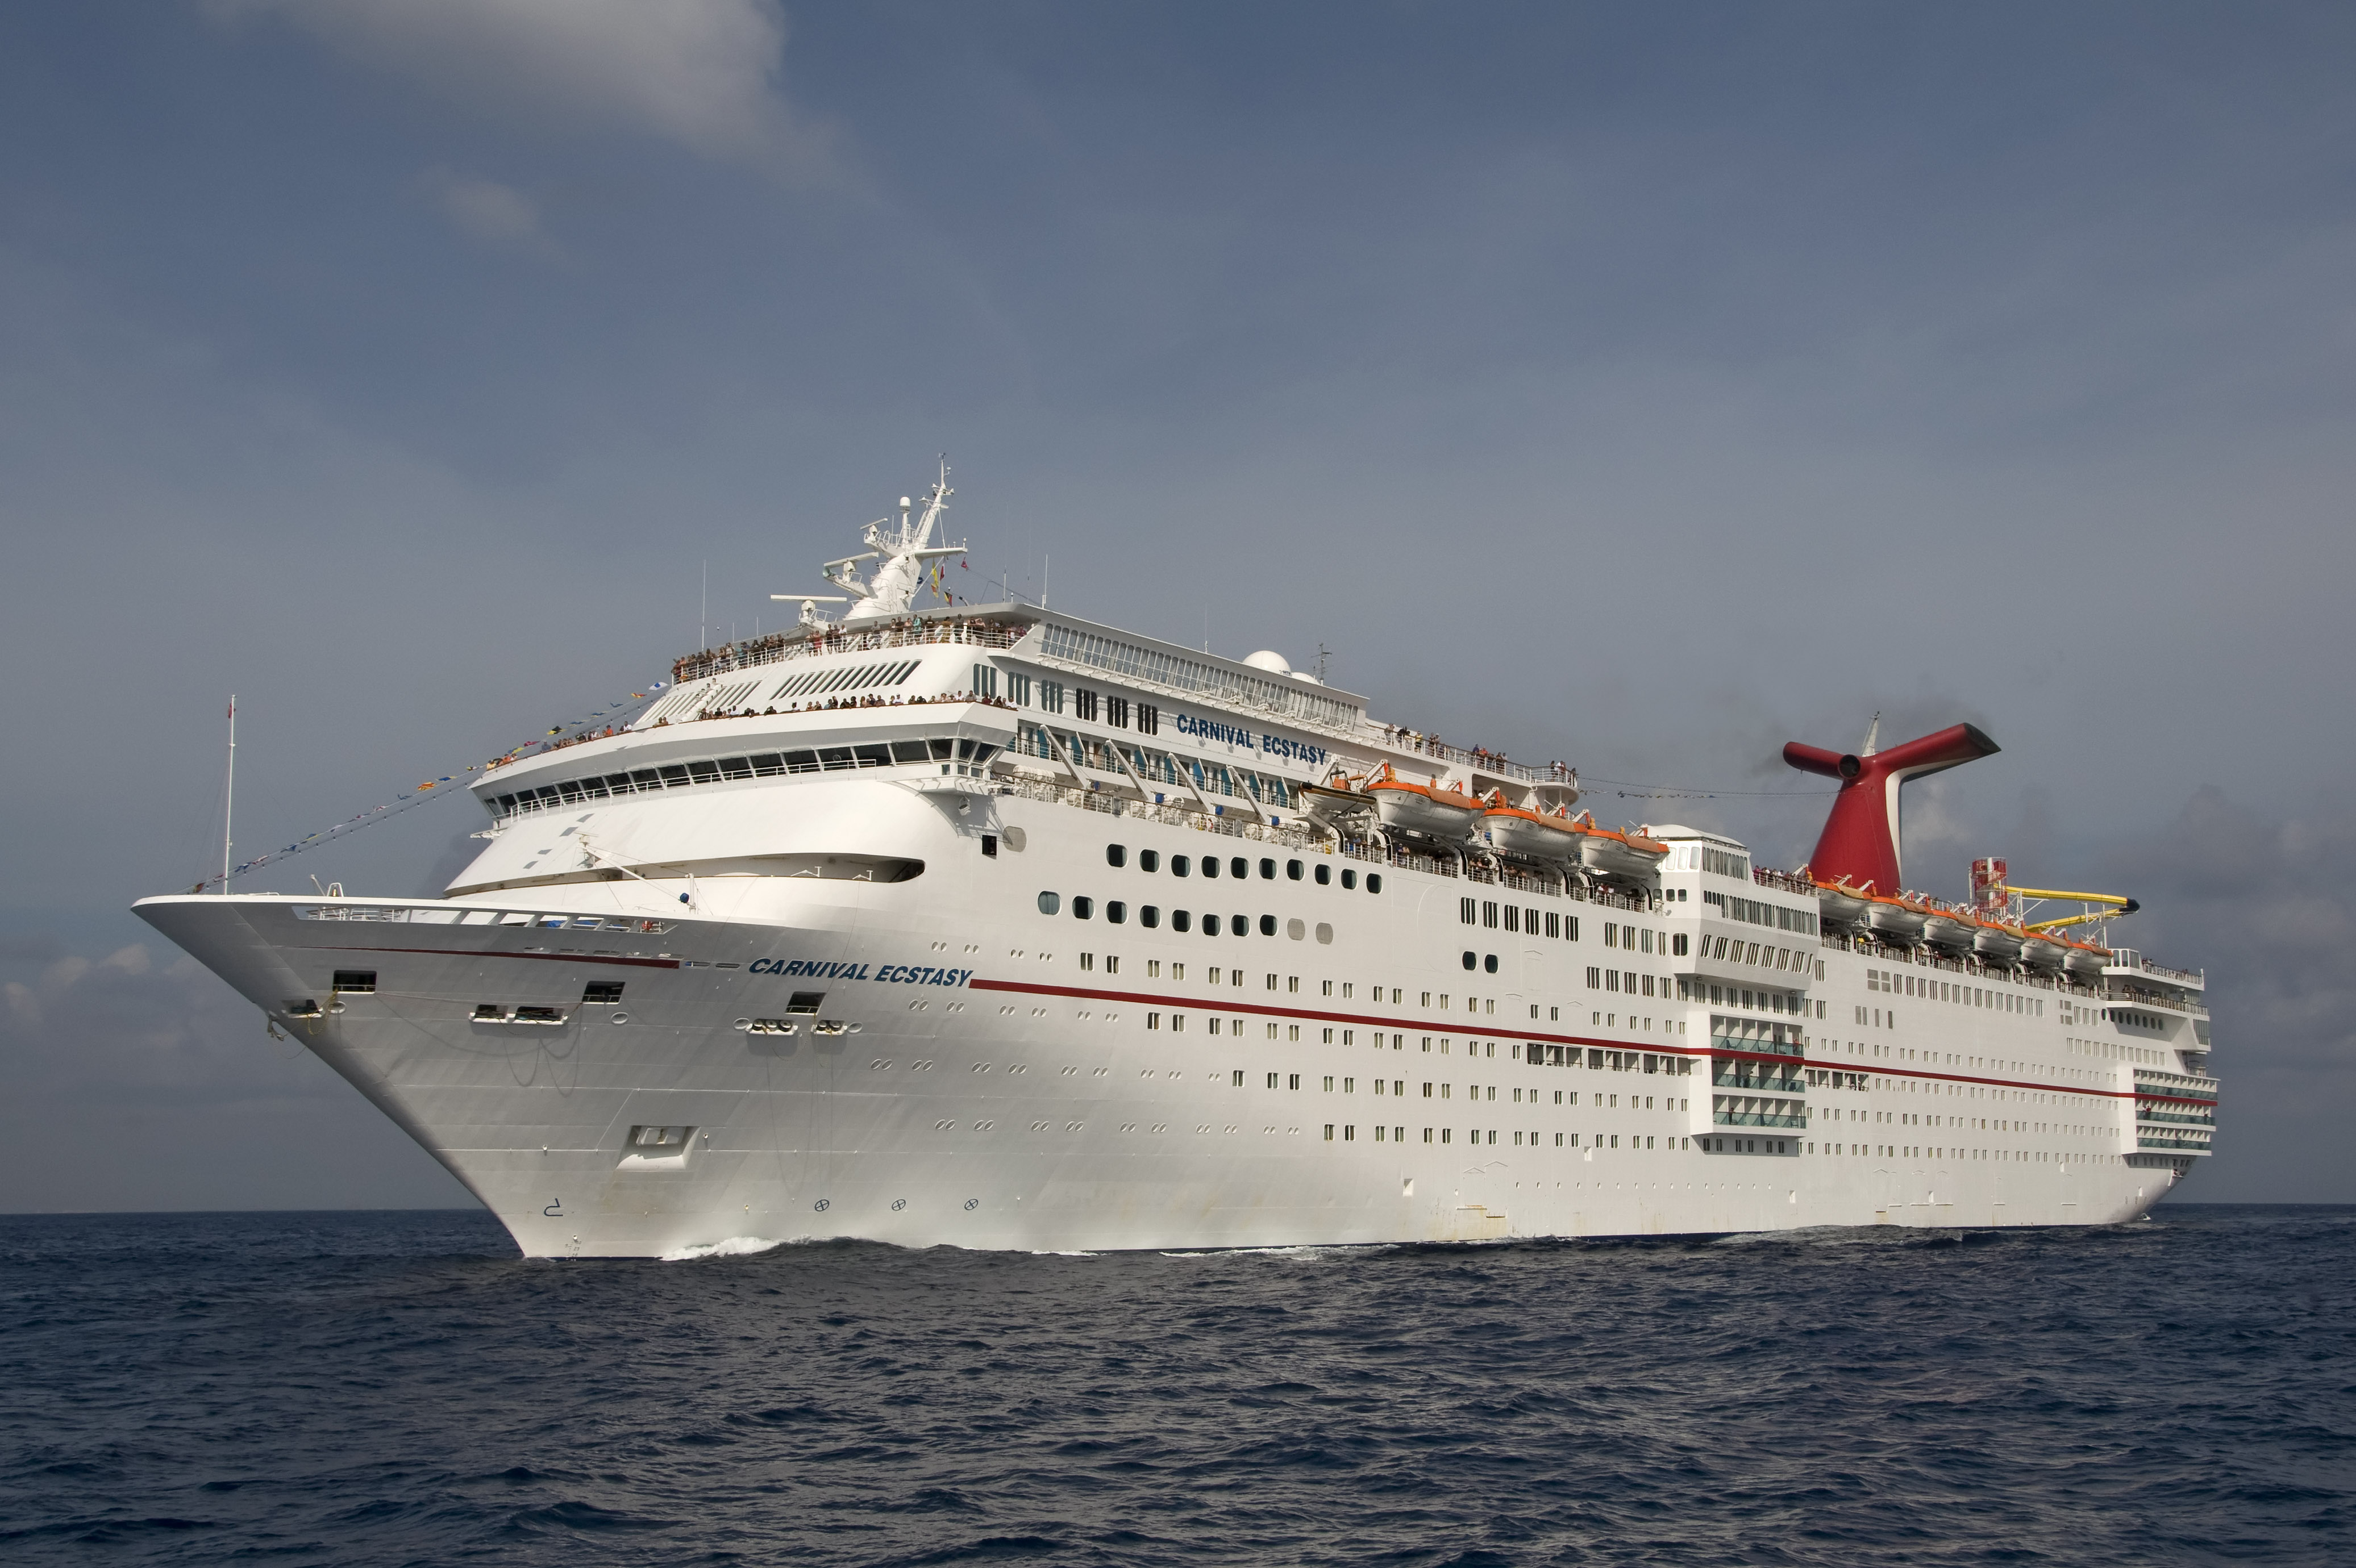 Carnival Cruise Line News - Age of carnival cruise ships